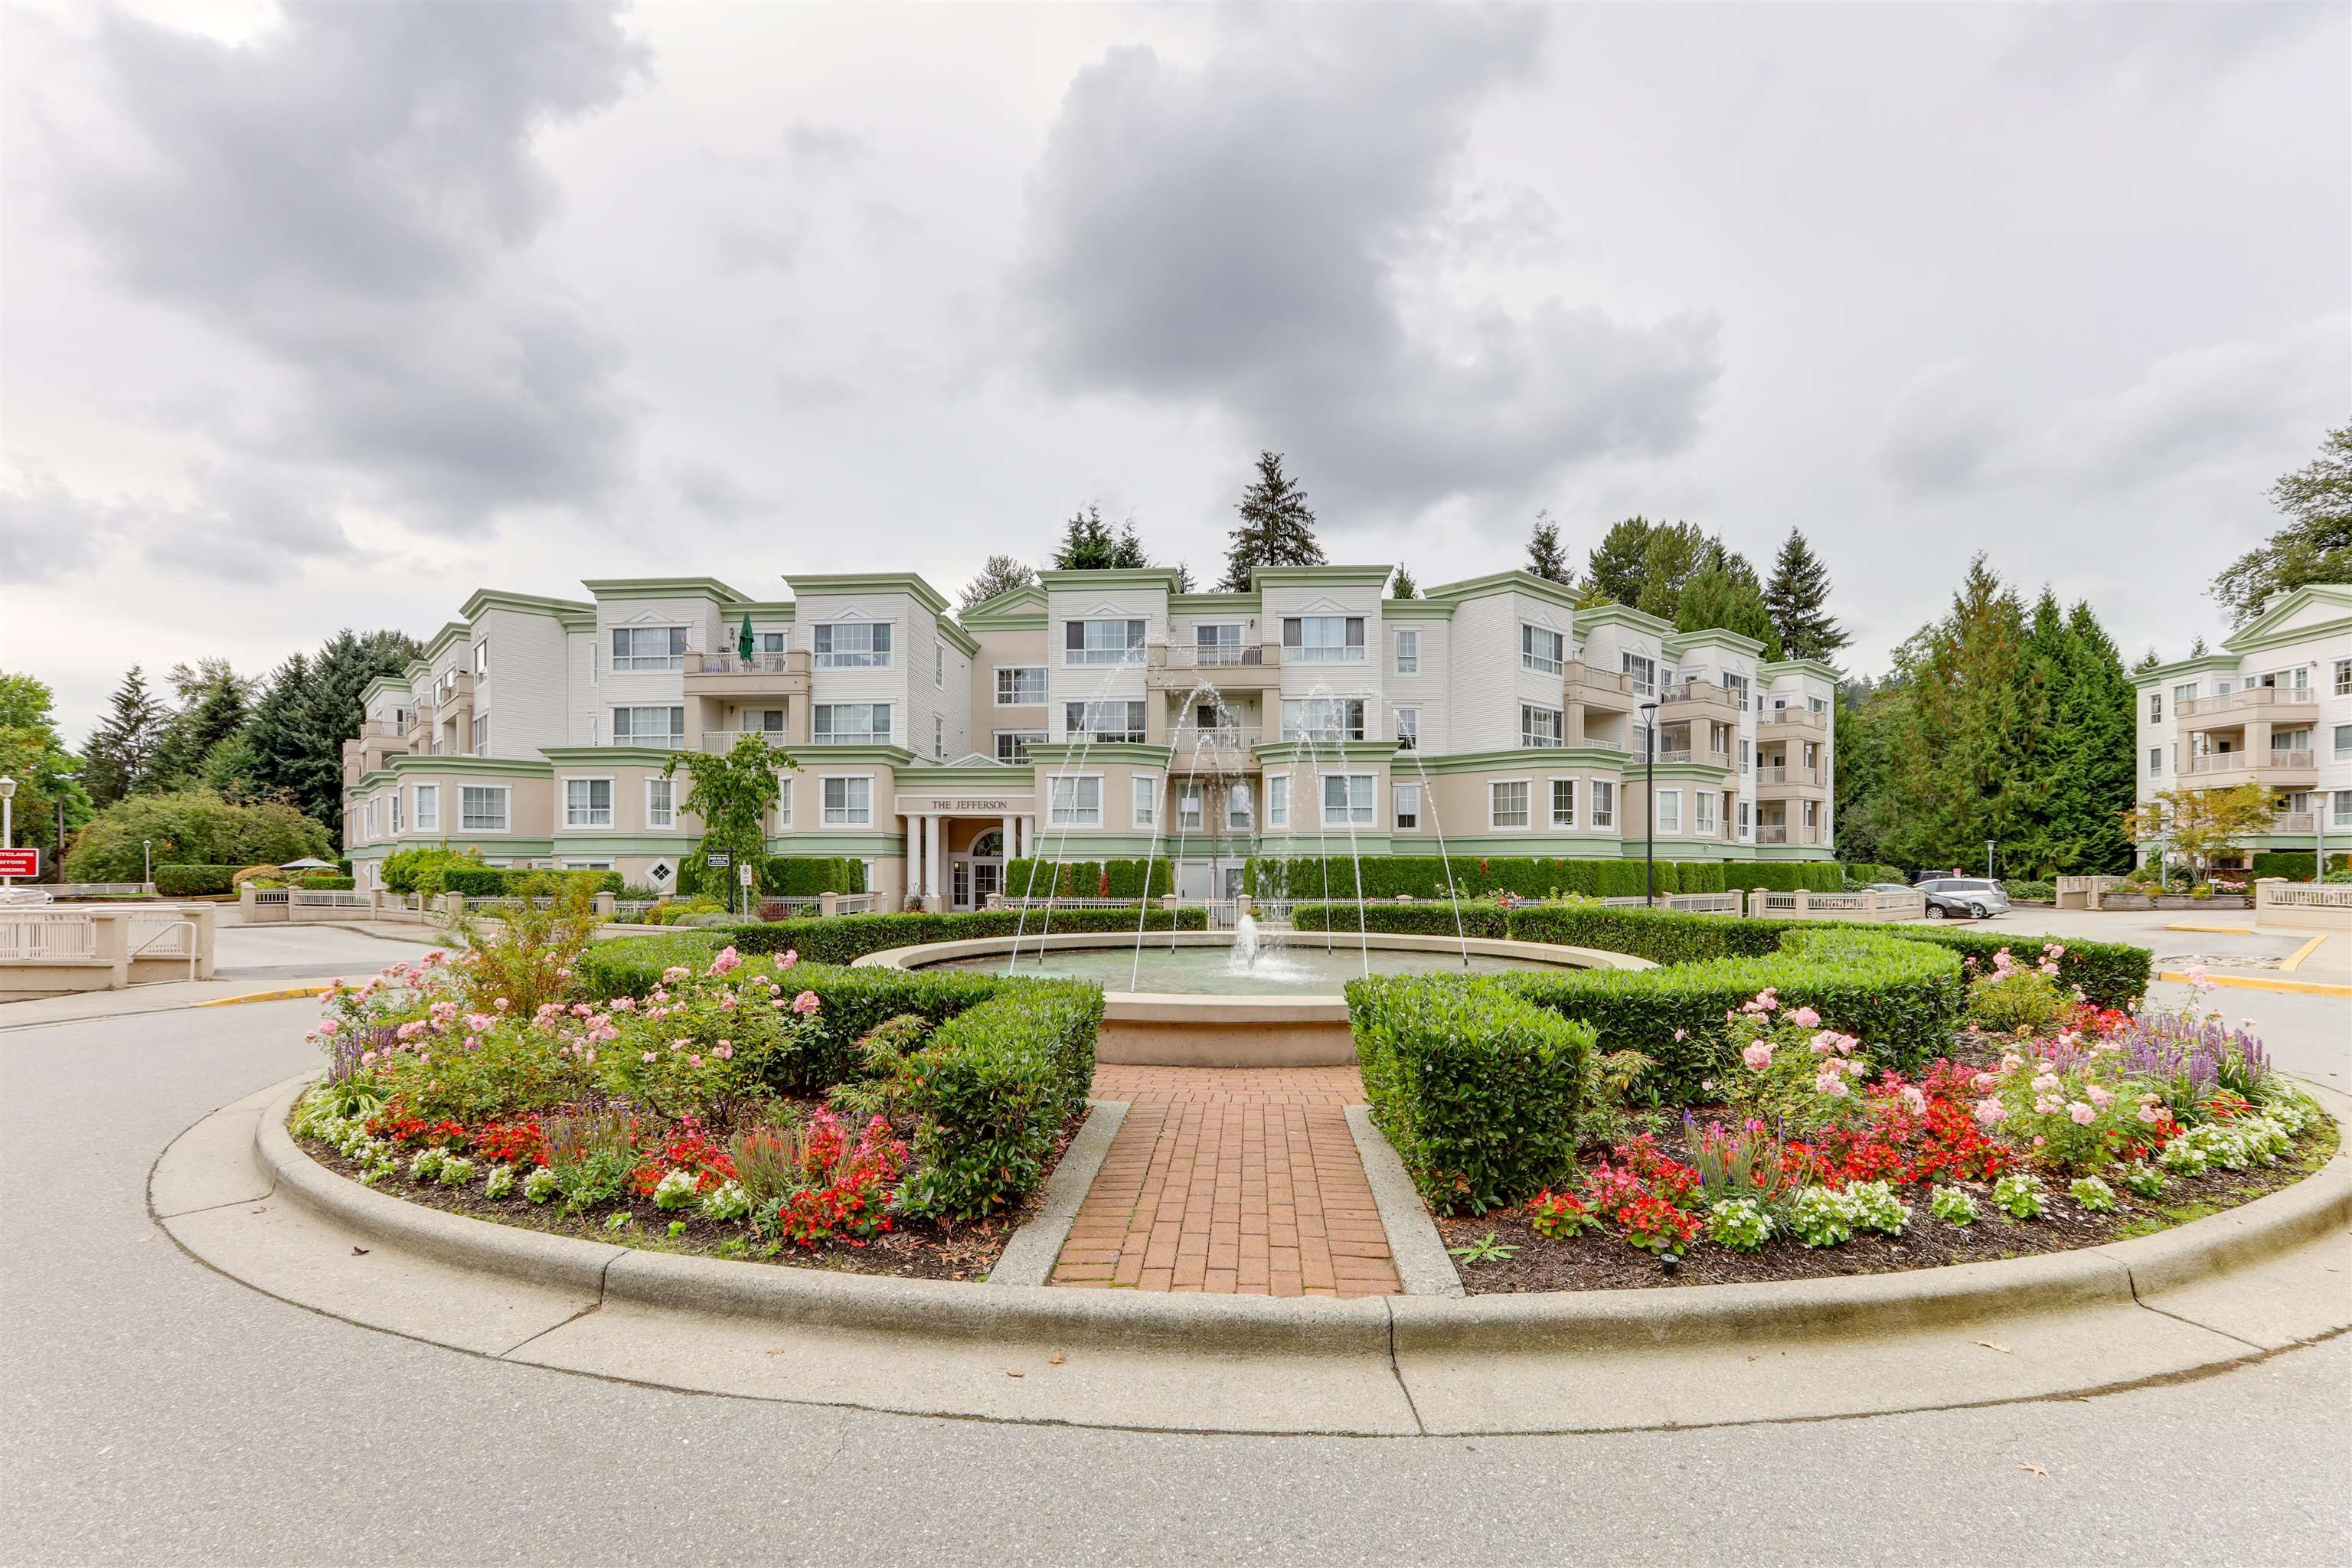 """Main Photo: 316 2960 PRINCESS Crescent in Coquitlam: Canyon Springs Condo for sale in """"THE JEFFERSON"""" : MLS®# R2620387"""